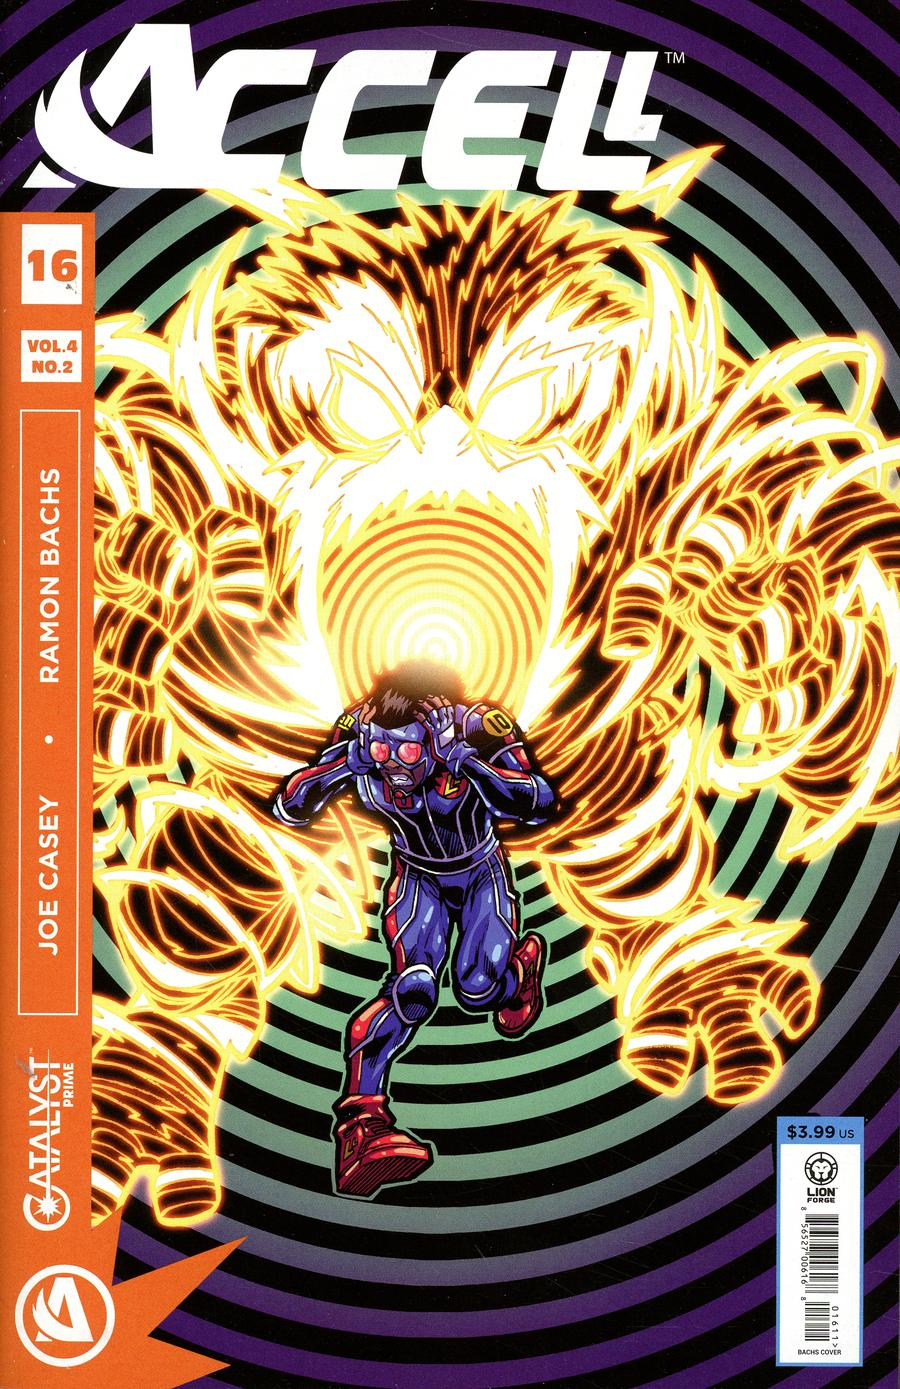 Catalyst Prime Accell #16